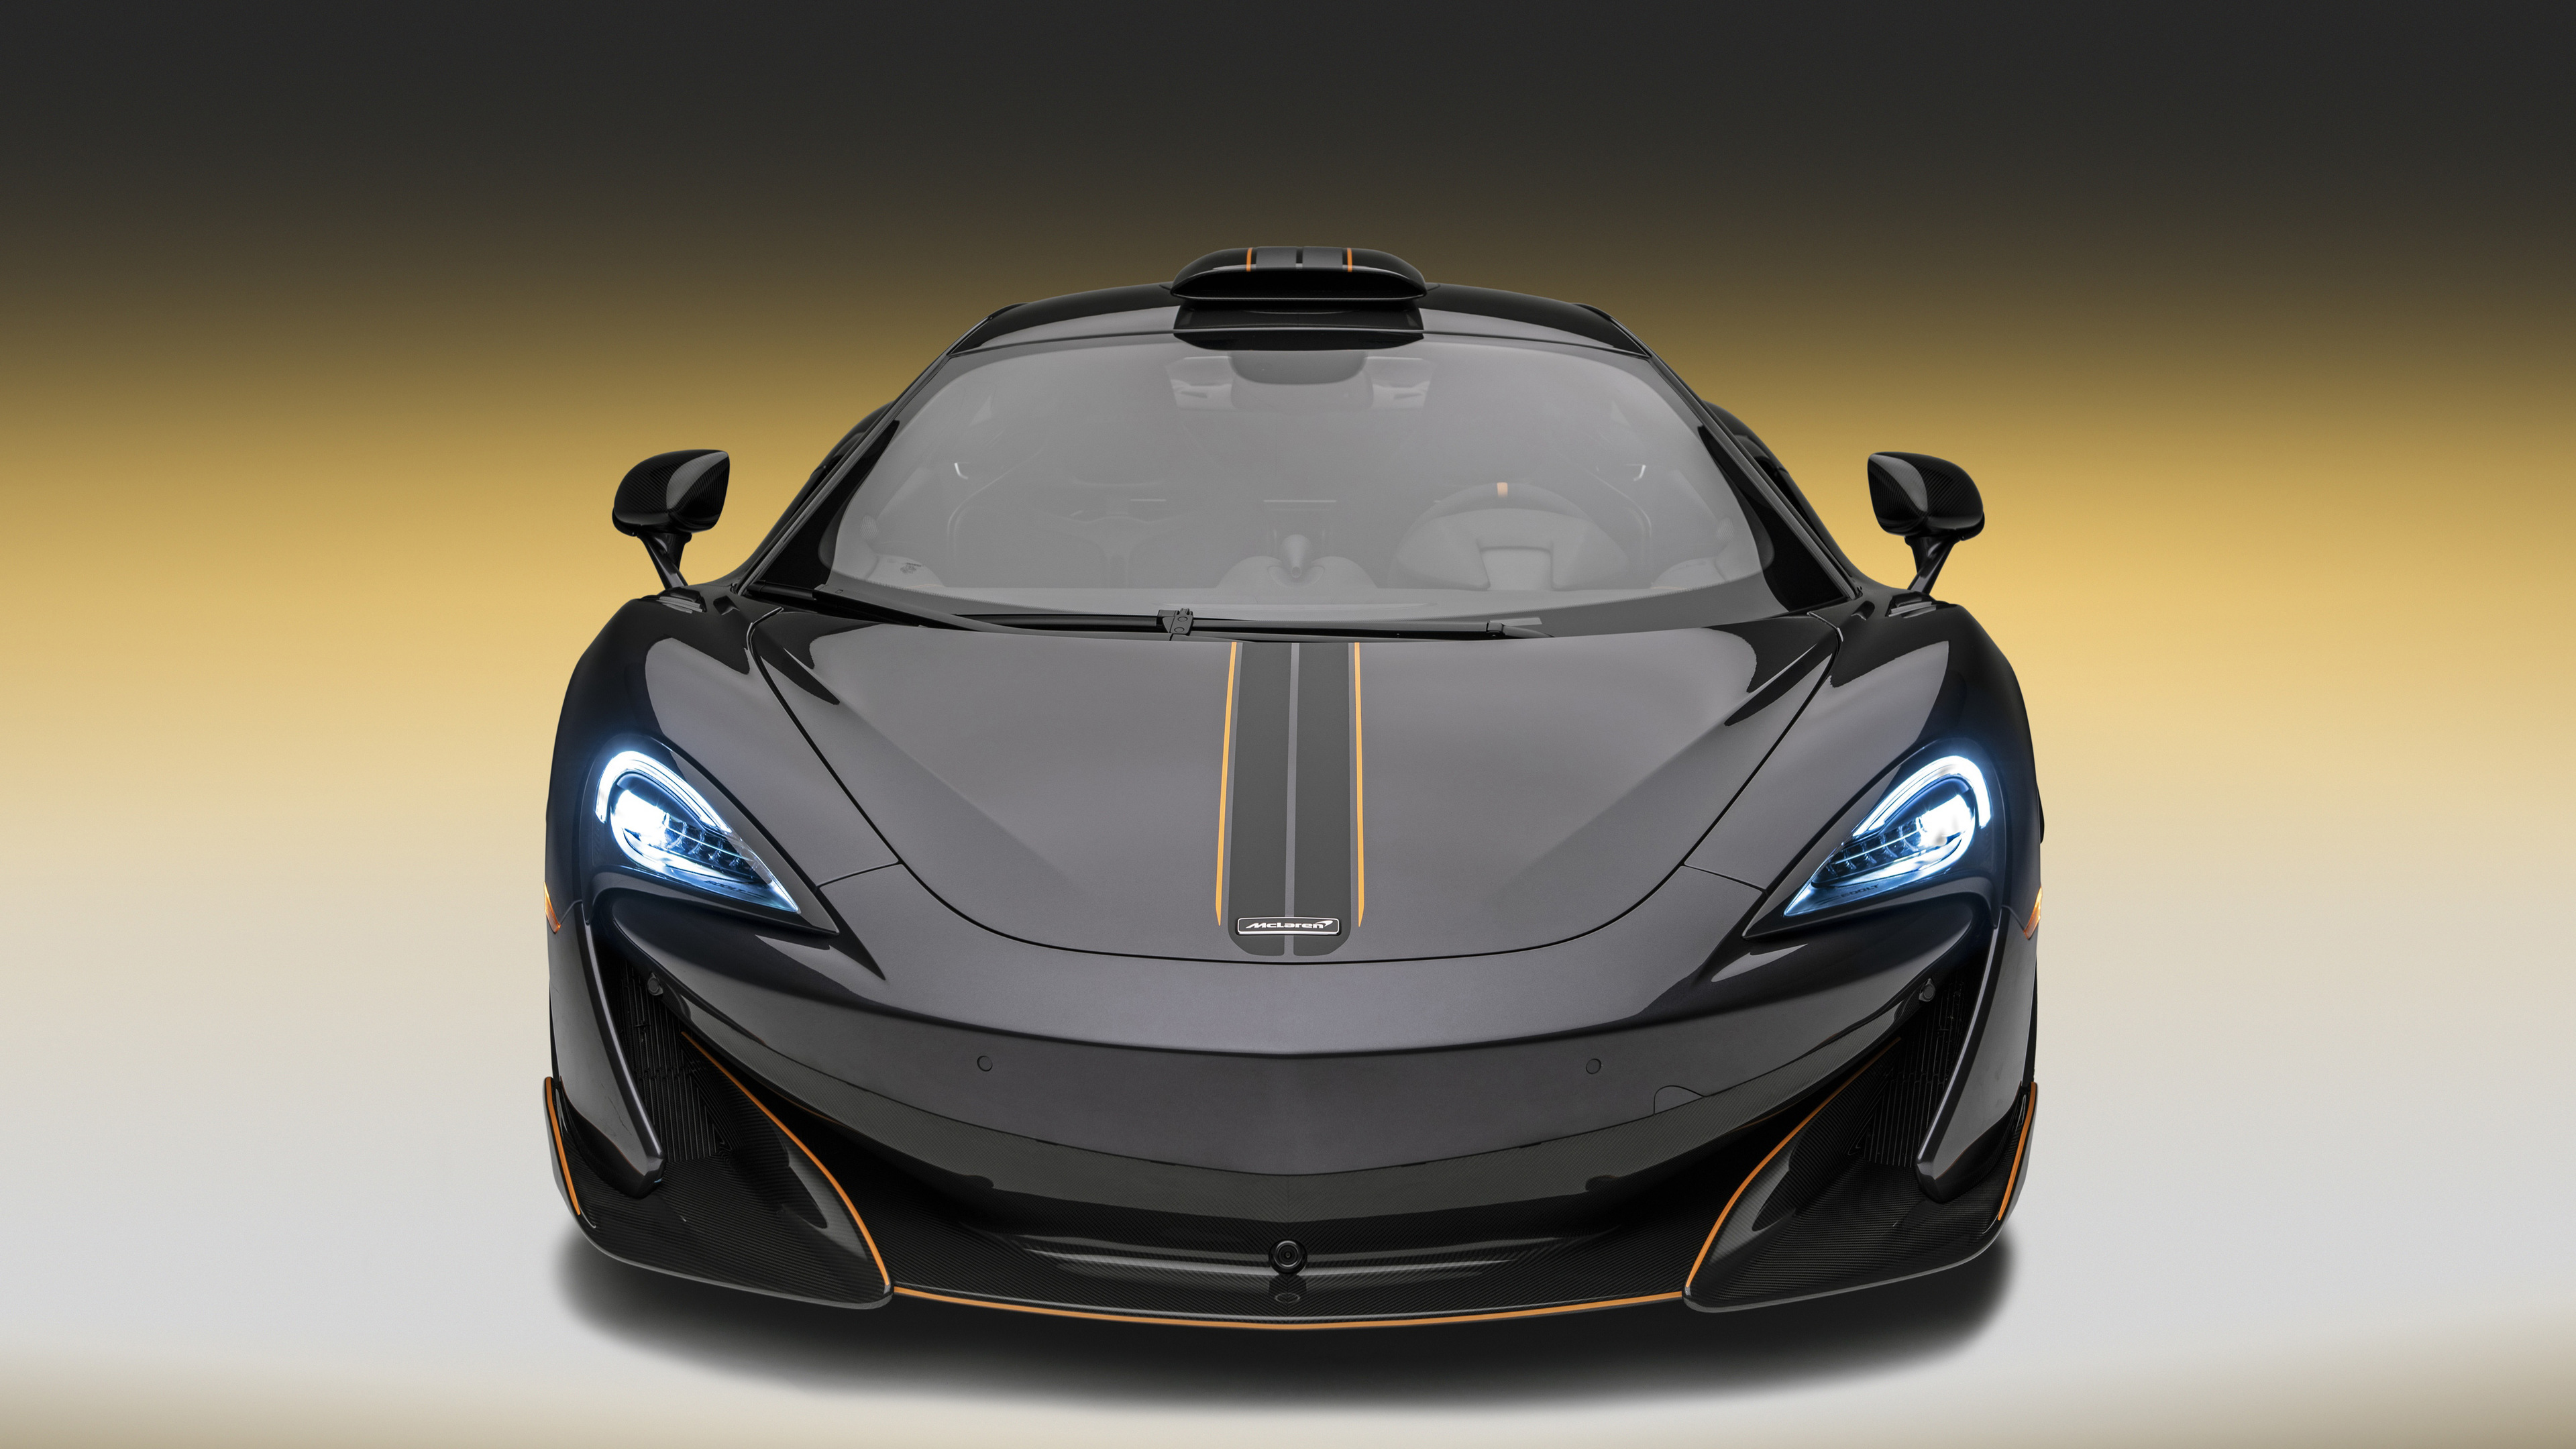 2018 mclaren 600lt front 1539113973 - 2018 McLaren 600LT Front - mclaren wallpapers, mclaren 600lt wallpapers, hd-wallpapers, cars wallpapers, 4k-wallpapers, 2018 cars wallpapers